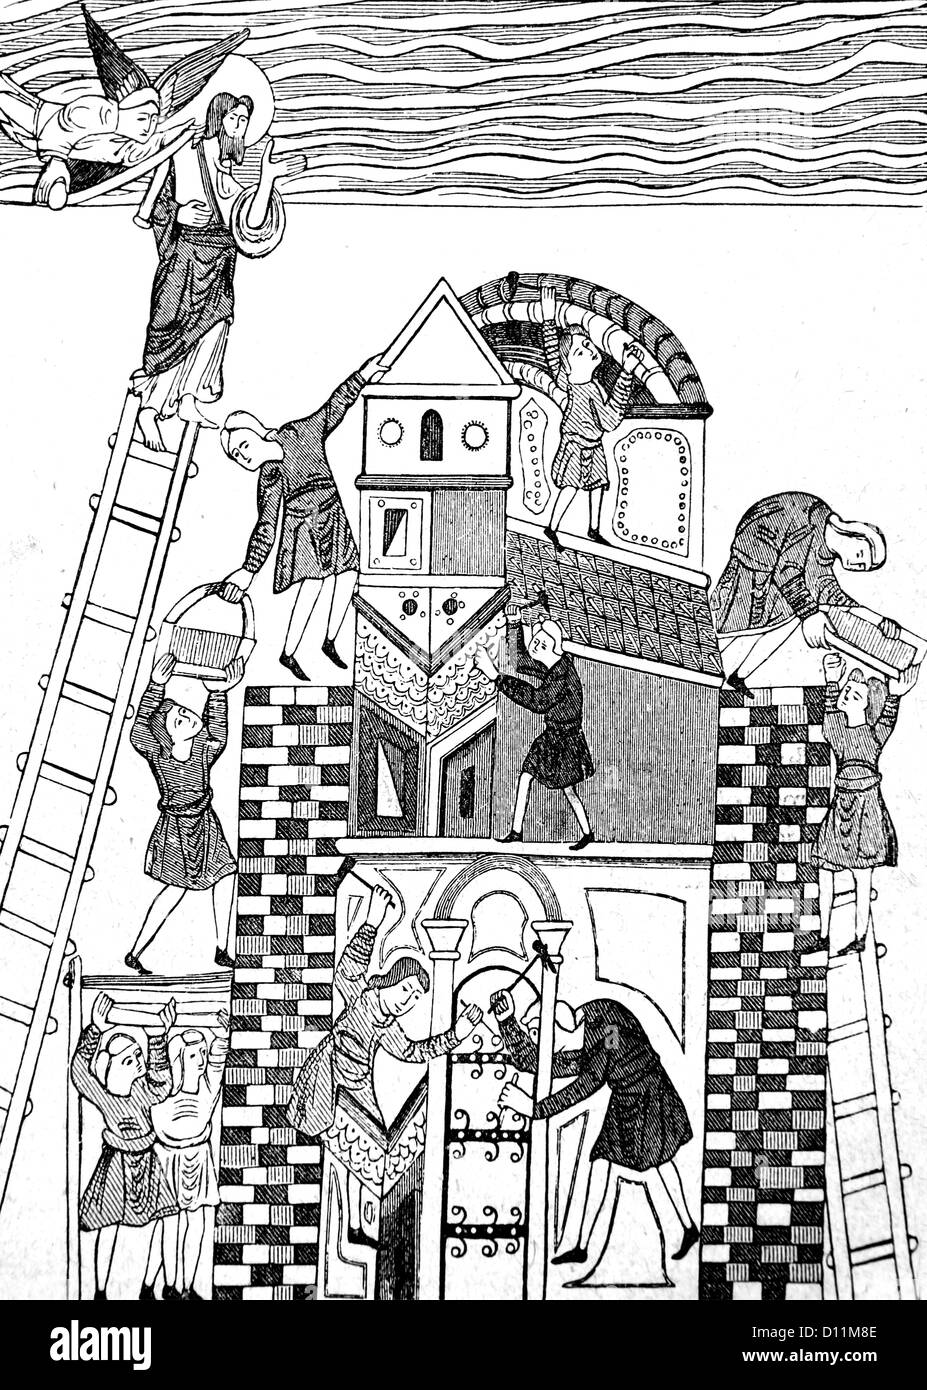 Illustration Of The Building Of The Tower Of Babel From The Book Cassell's History Of England Volume I - Stock Image